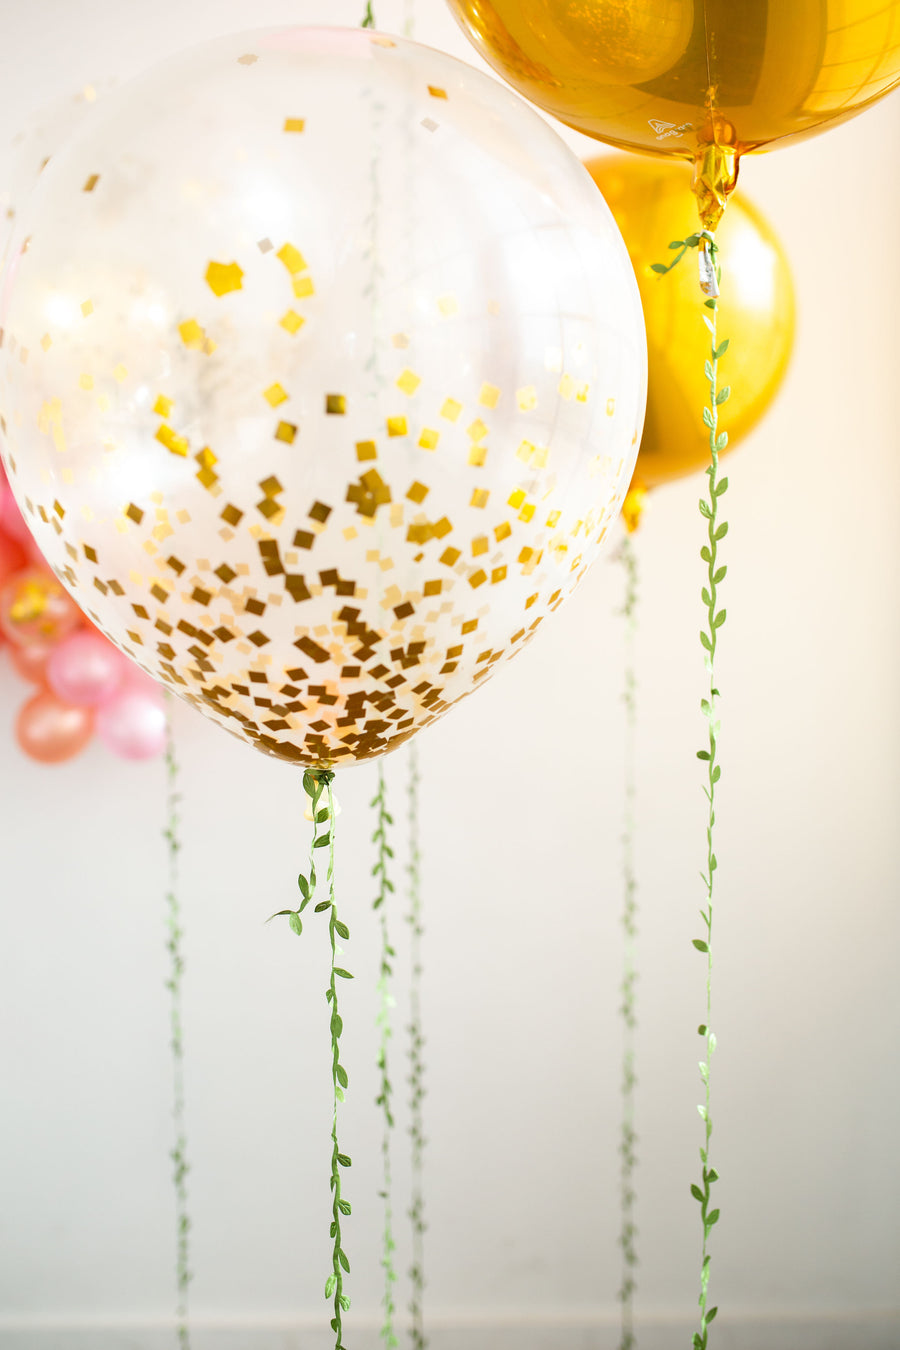 Balloon Greenery - Vine Garland for Floral Balloons